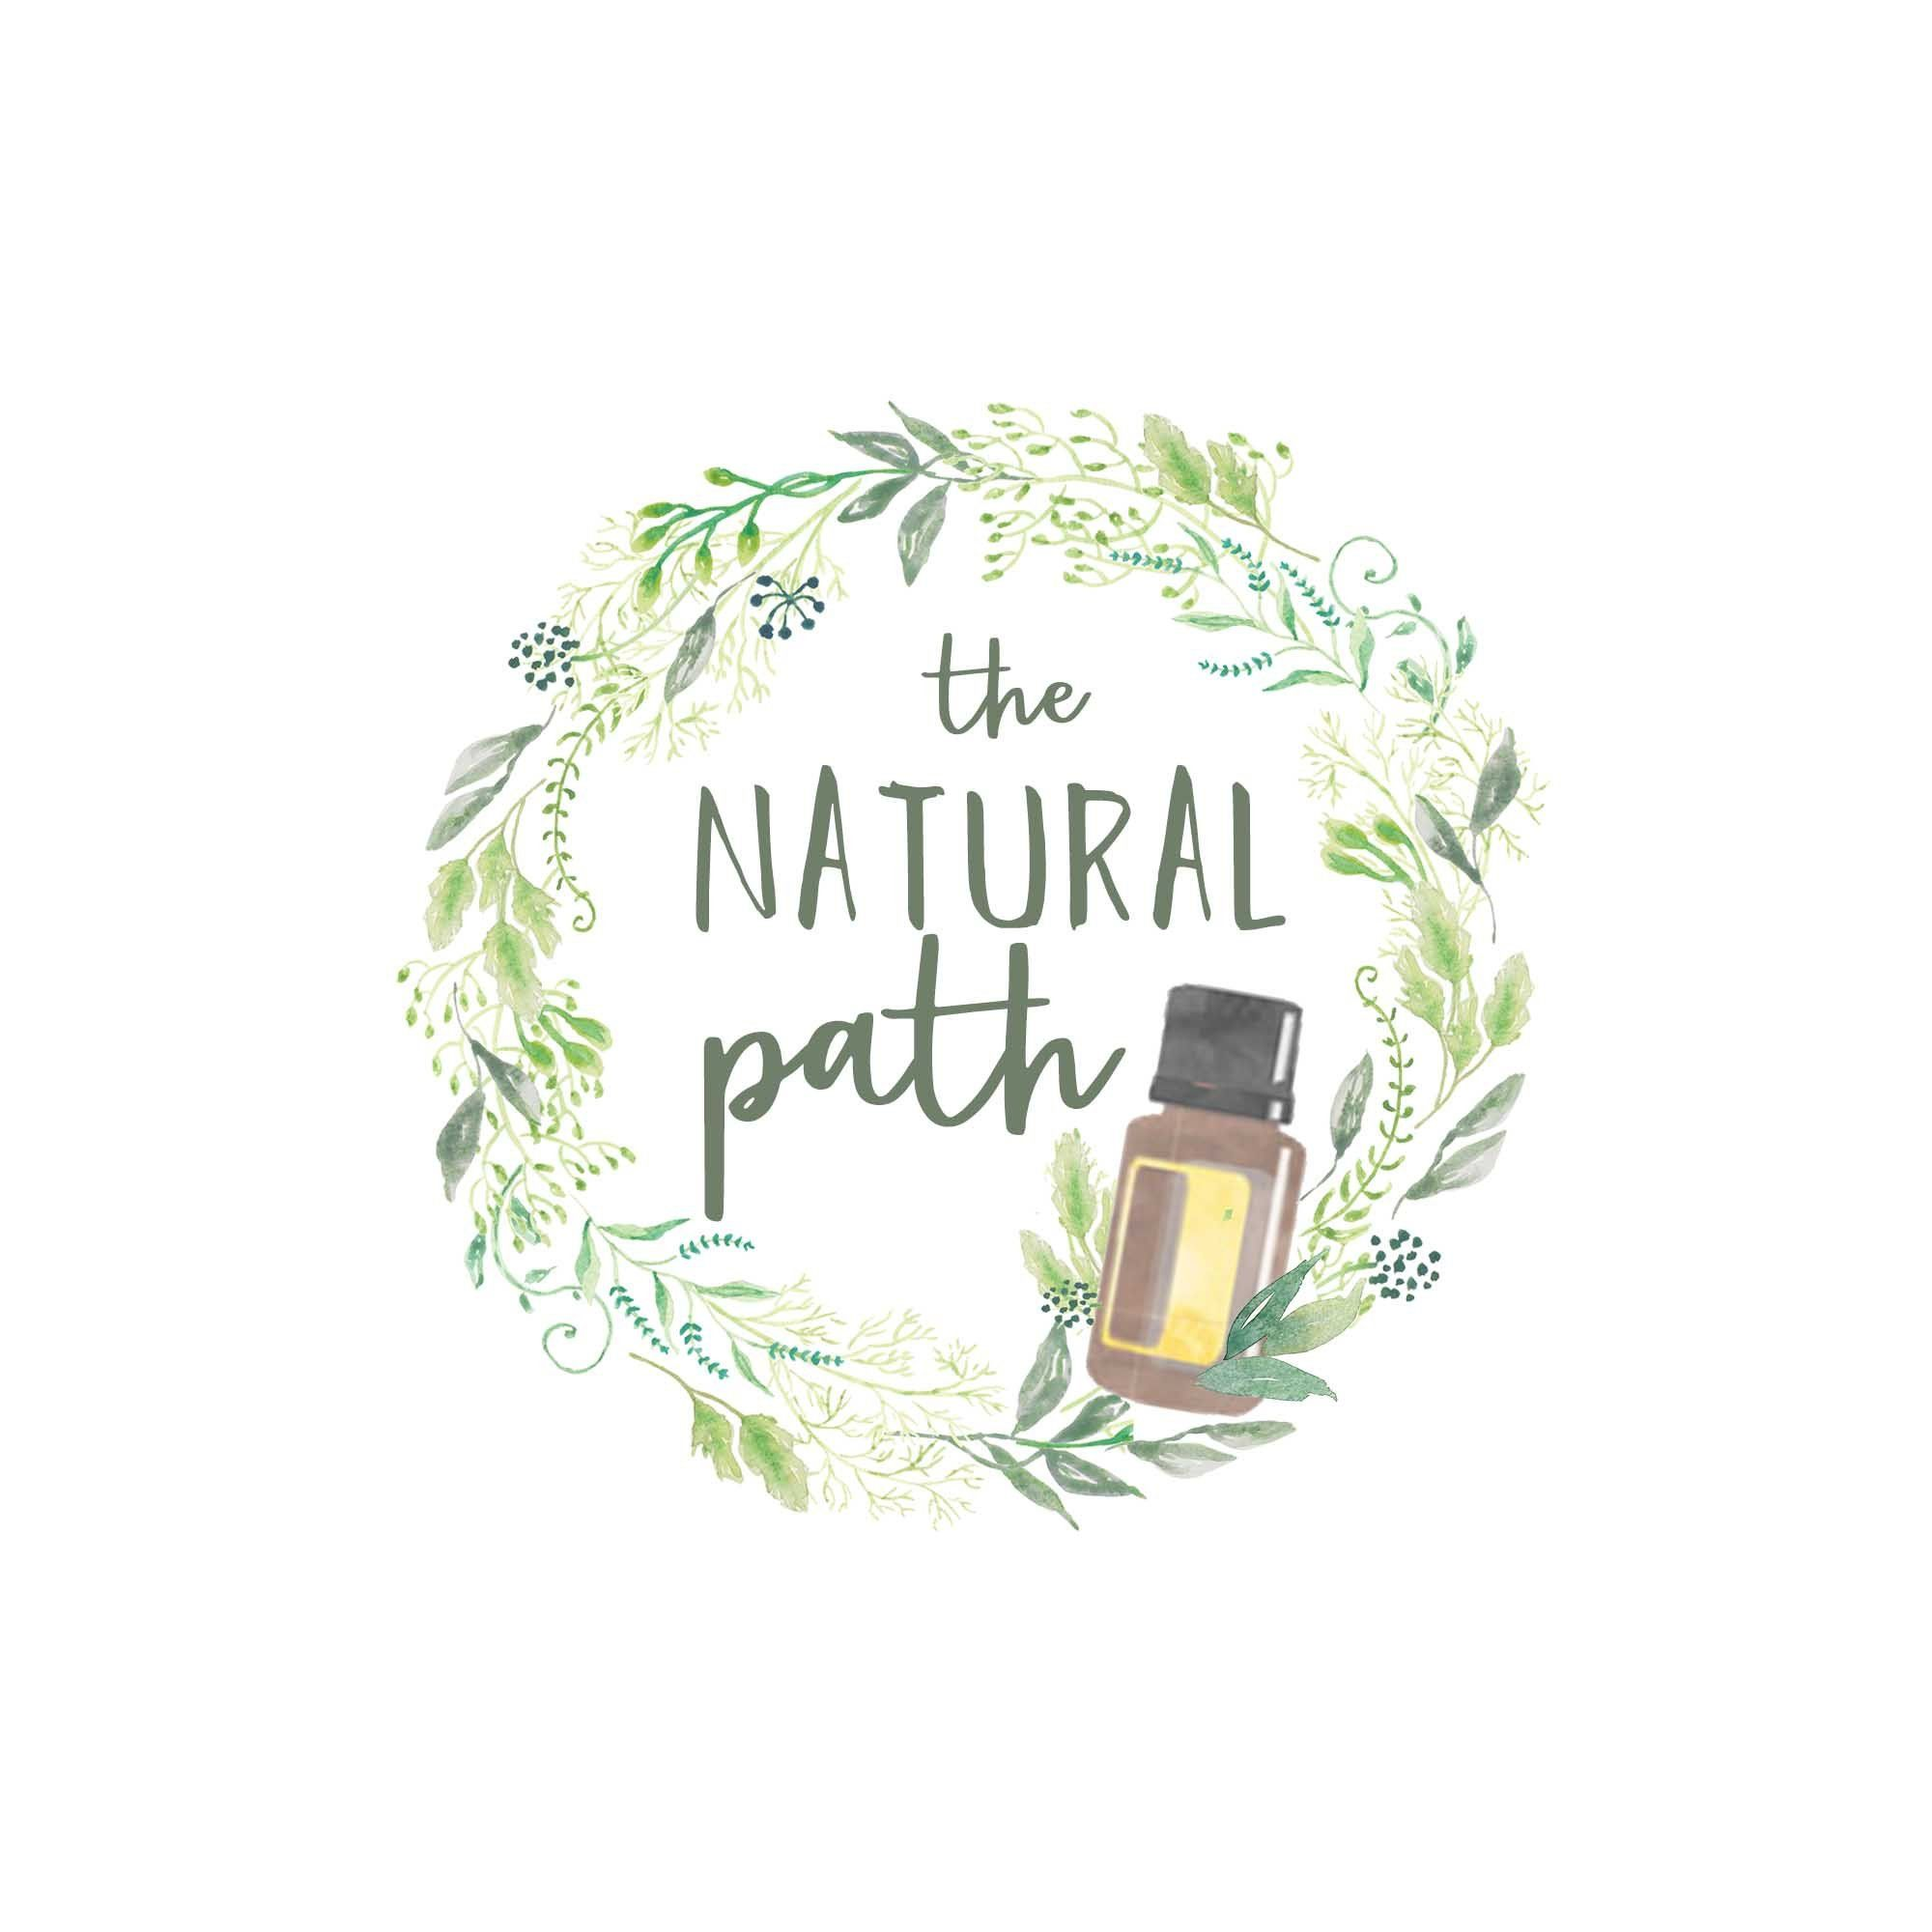 Premade Custom Logo The Natural Path Essential Oil Design Branding Consultant By Charlisweb On